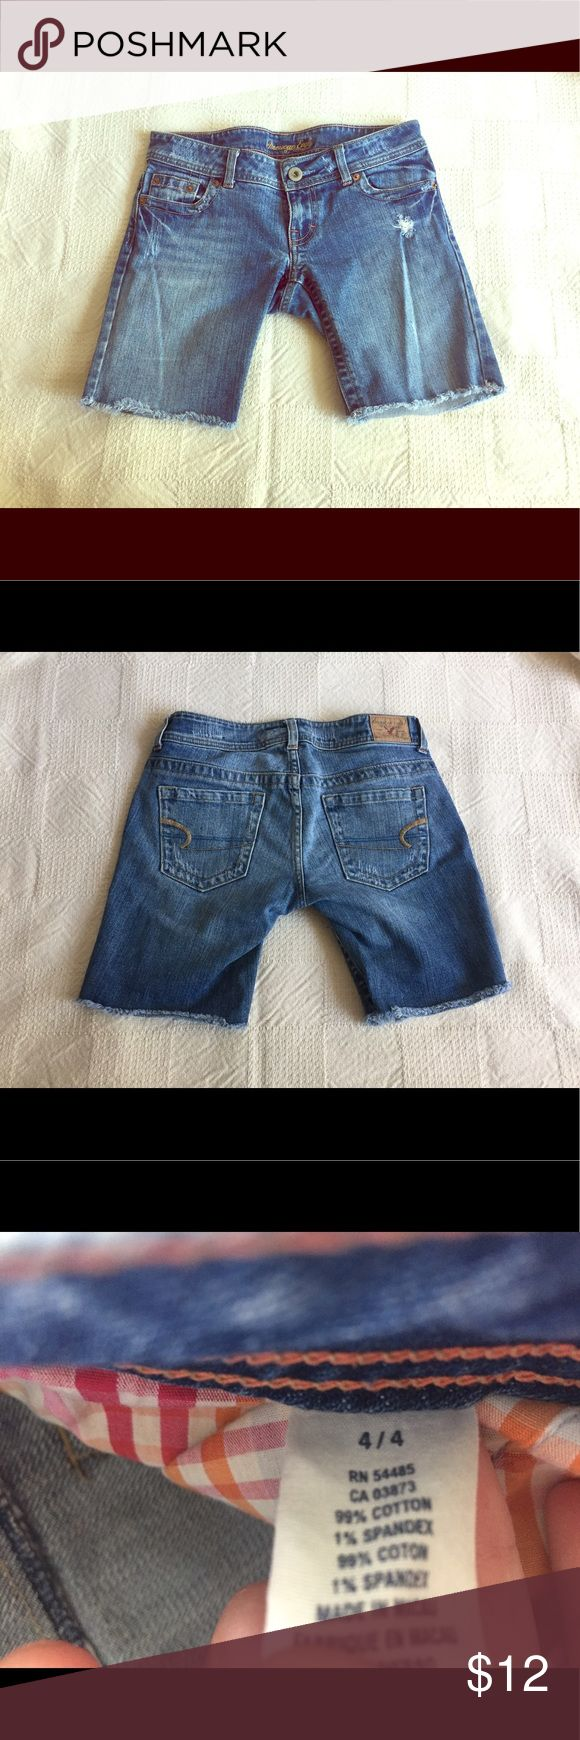 American Eagle Outfitters AEO jean shorts size 4 American Eagle AEO jean short cut-offs. Amazing condition. Pretty much brand new. Boyfriend style. Strategic distressing in front of one pocket. Size 4. 99% cotton. Ready for summer play! Model is for inspiration only--but VERY similar shorts. American Eagle Outfitters Shorts Jean Shorts